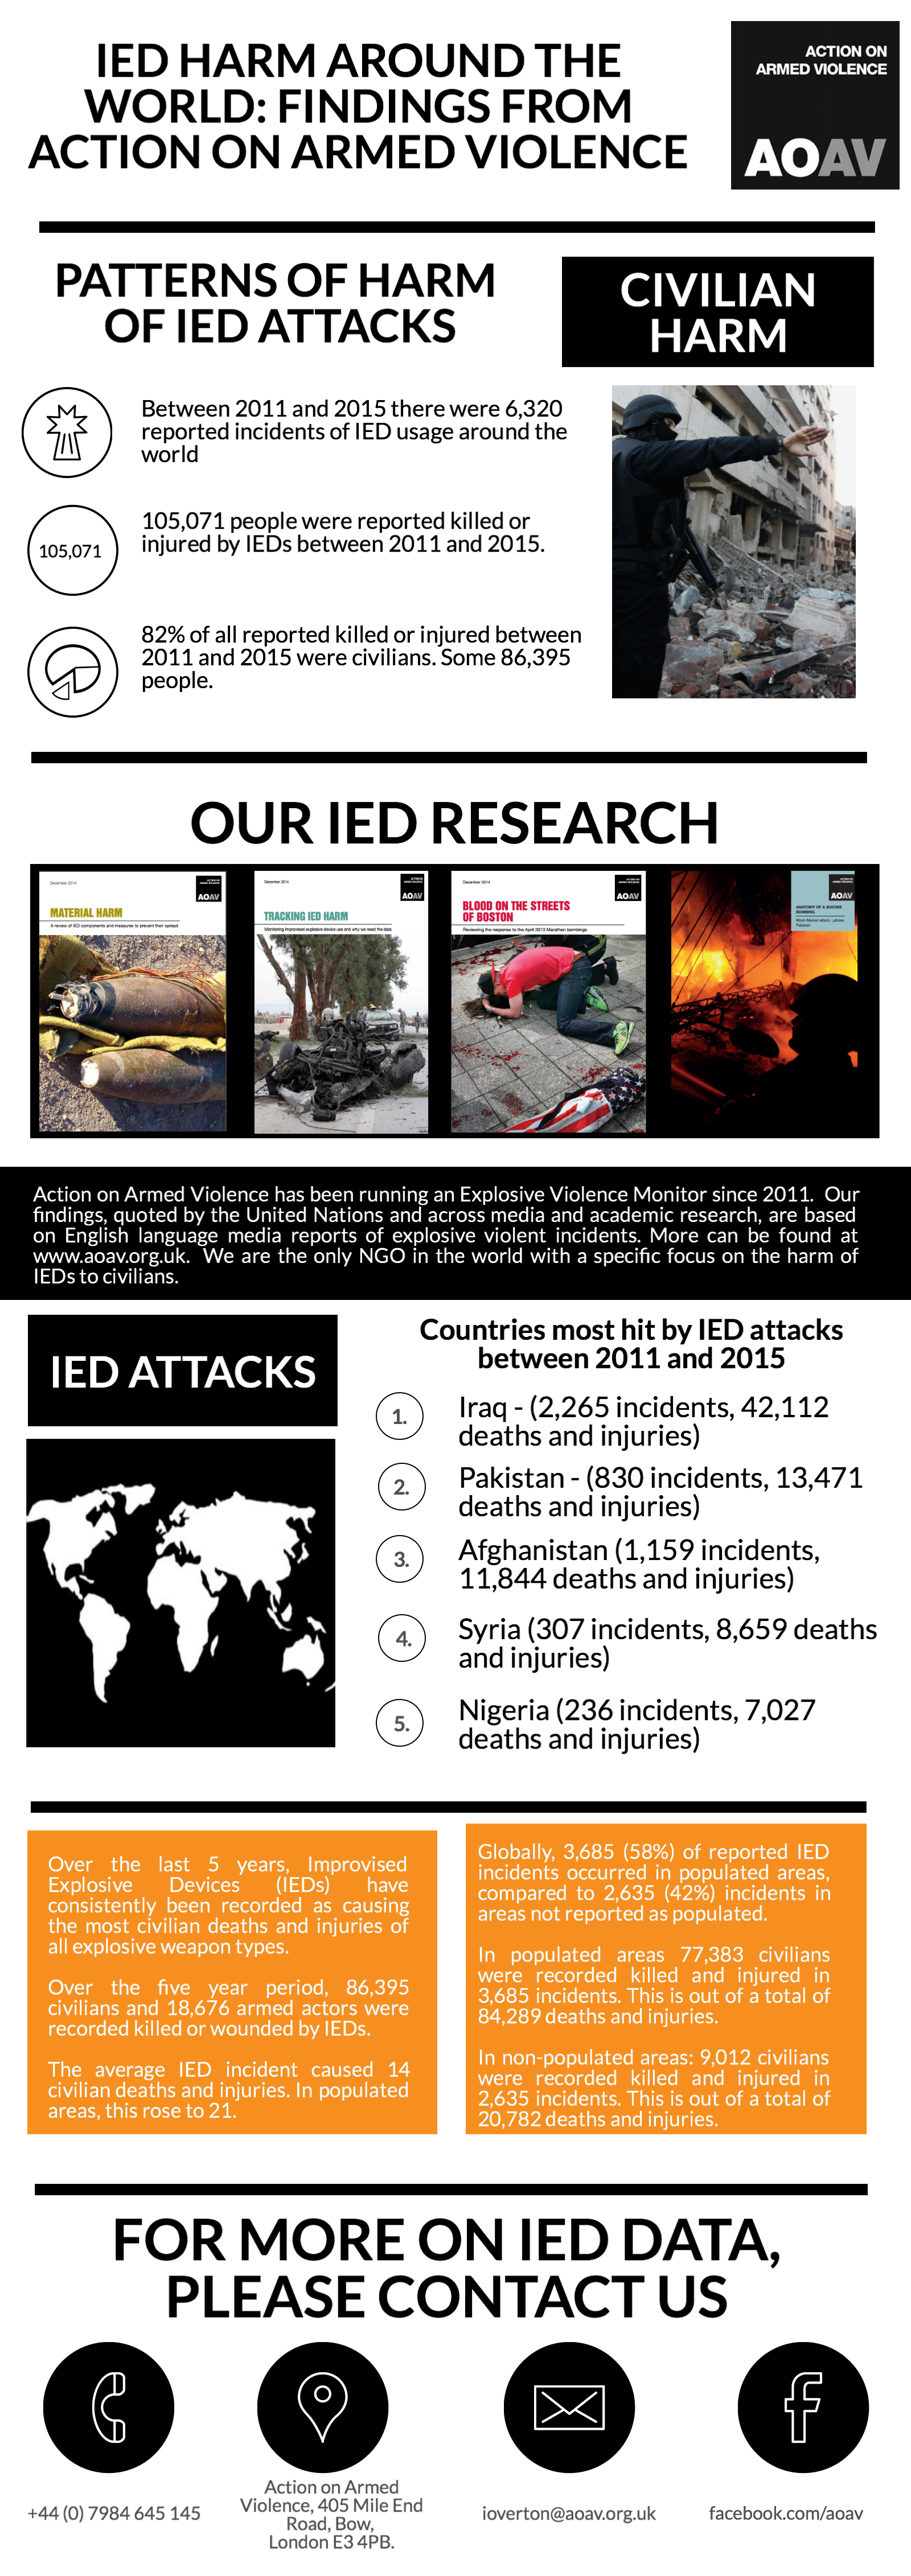 aoav-ied-overview